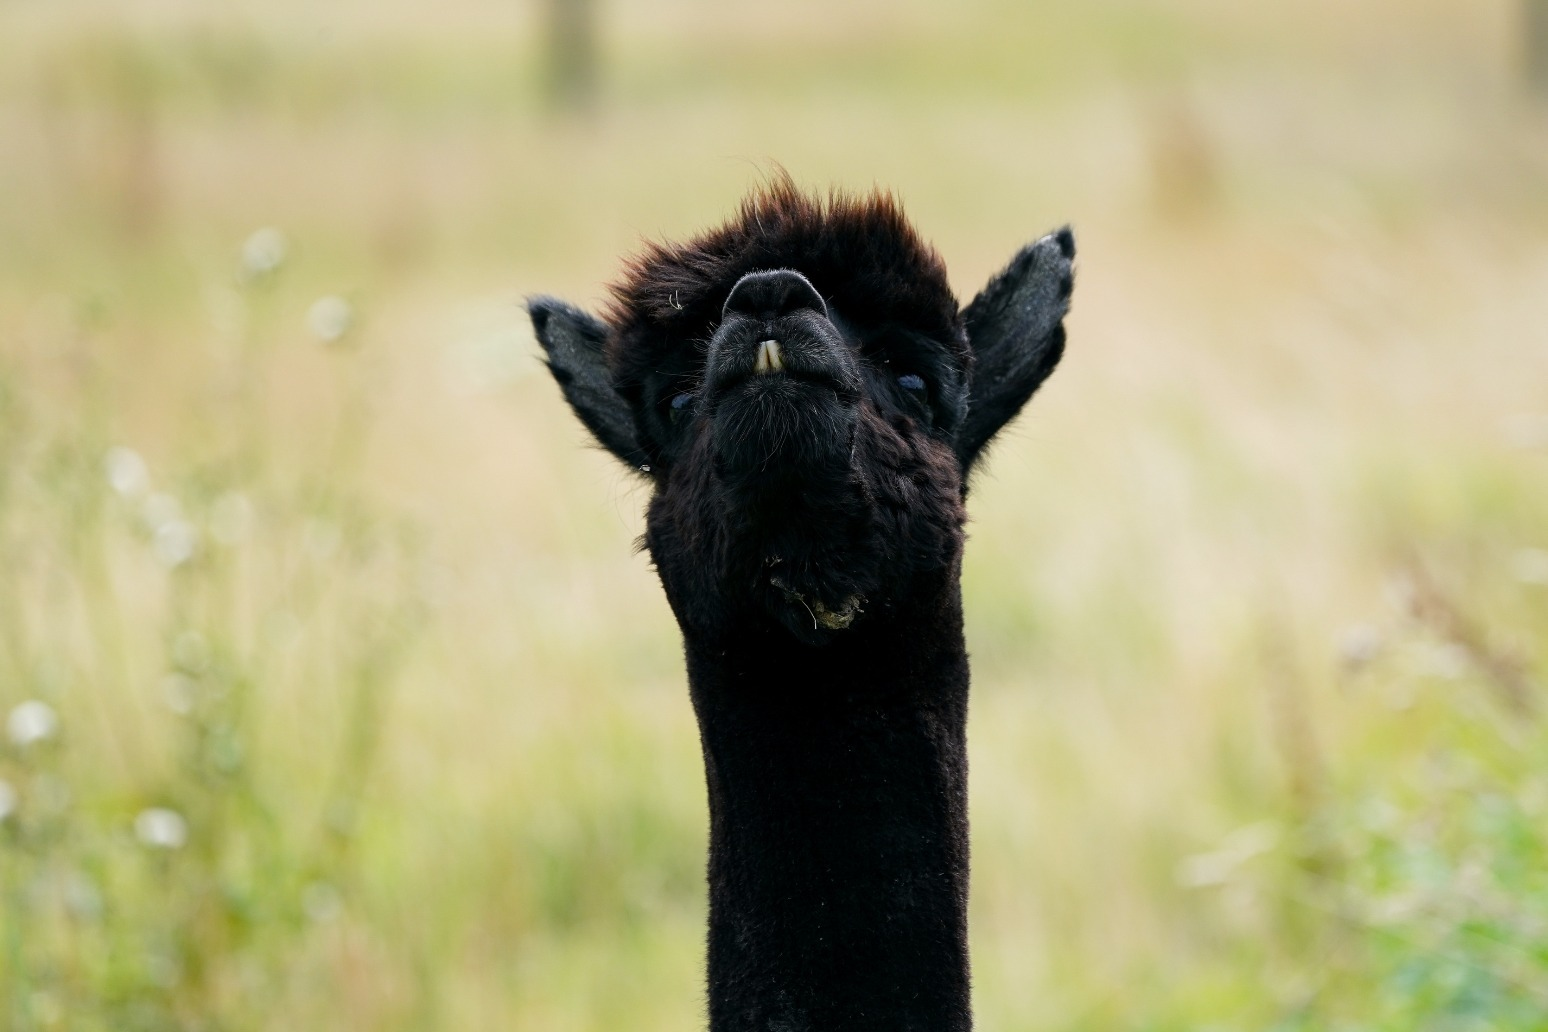 Geronimo the alpaca to be slaughtered after owner loses High Court case